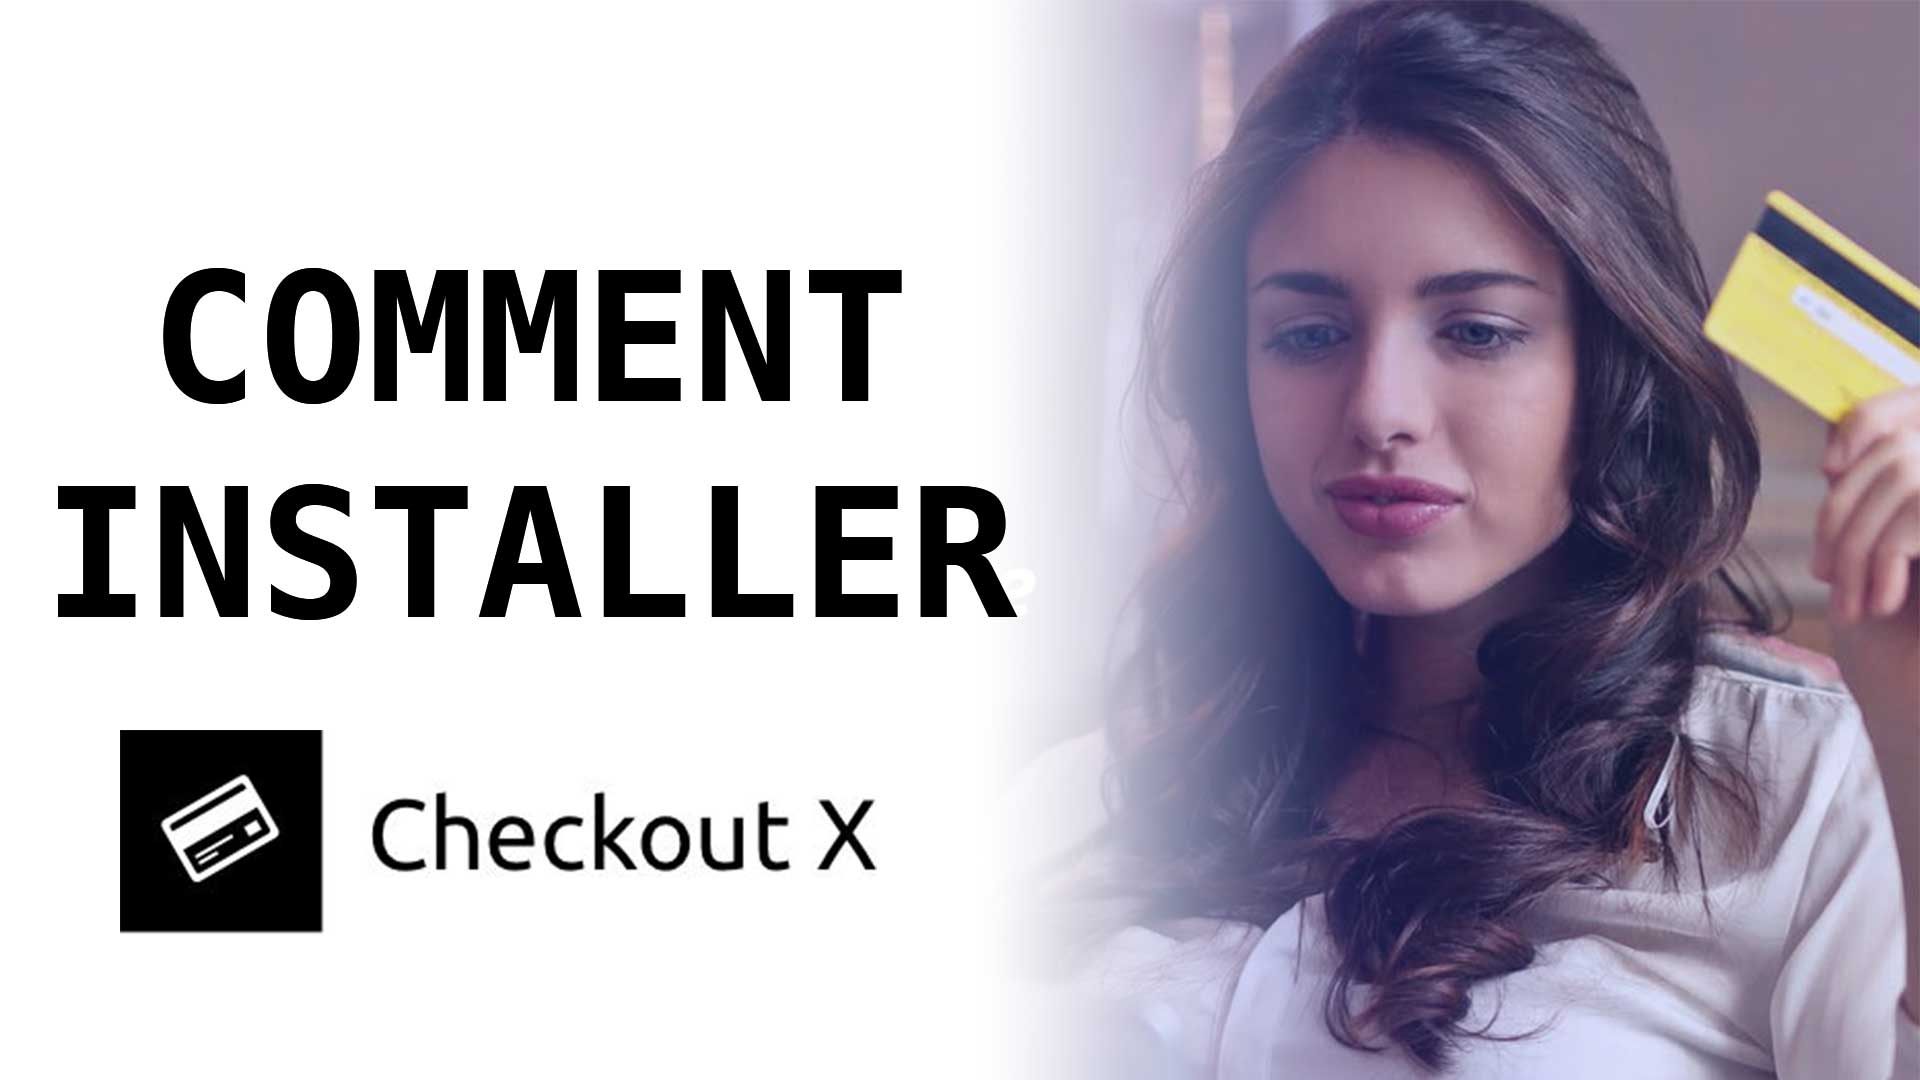 Comment Installer Checkout X